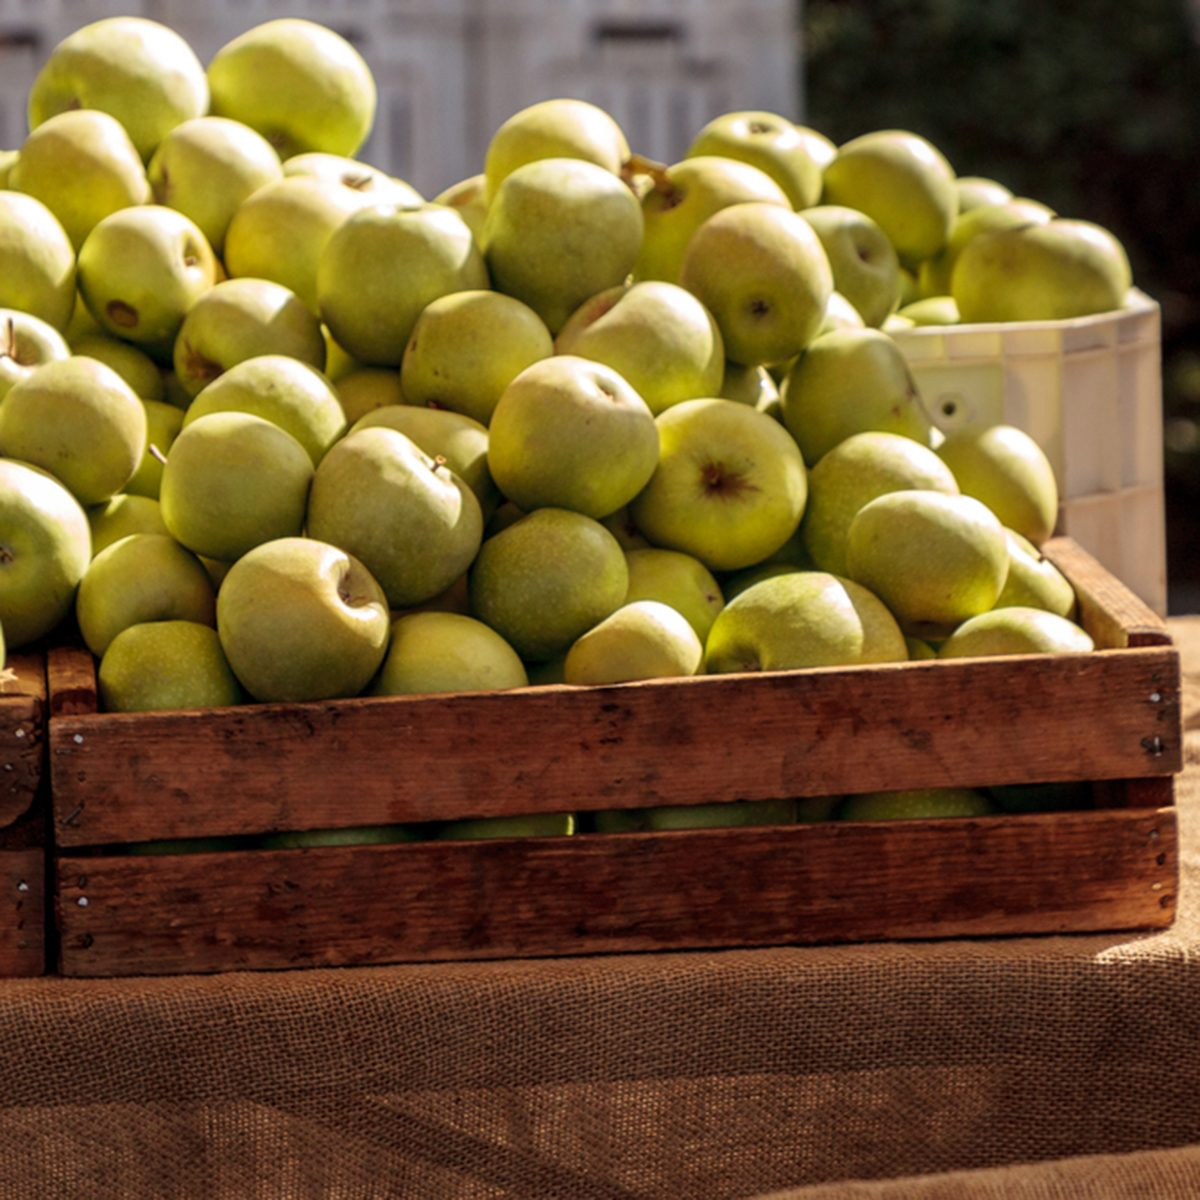 Bushel of green apples in a crate at a farmers market with other fruits and vegetables.